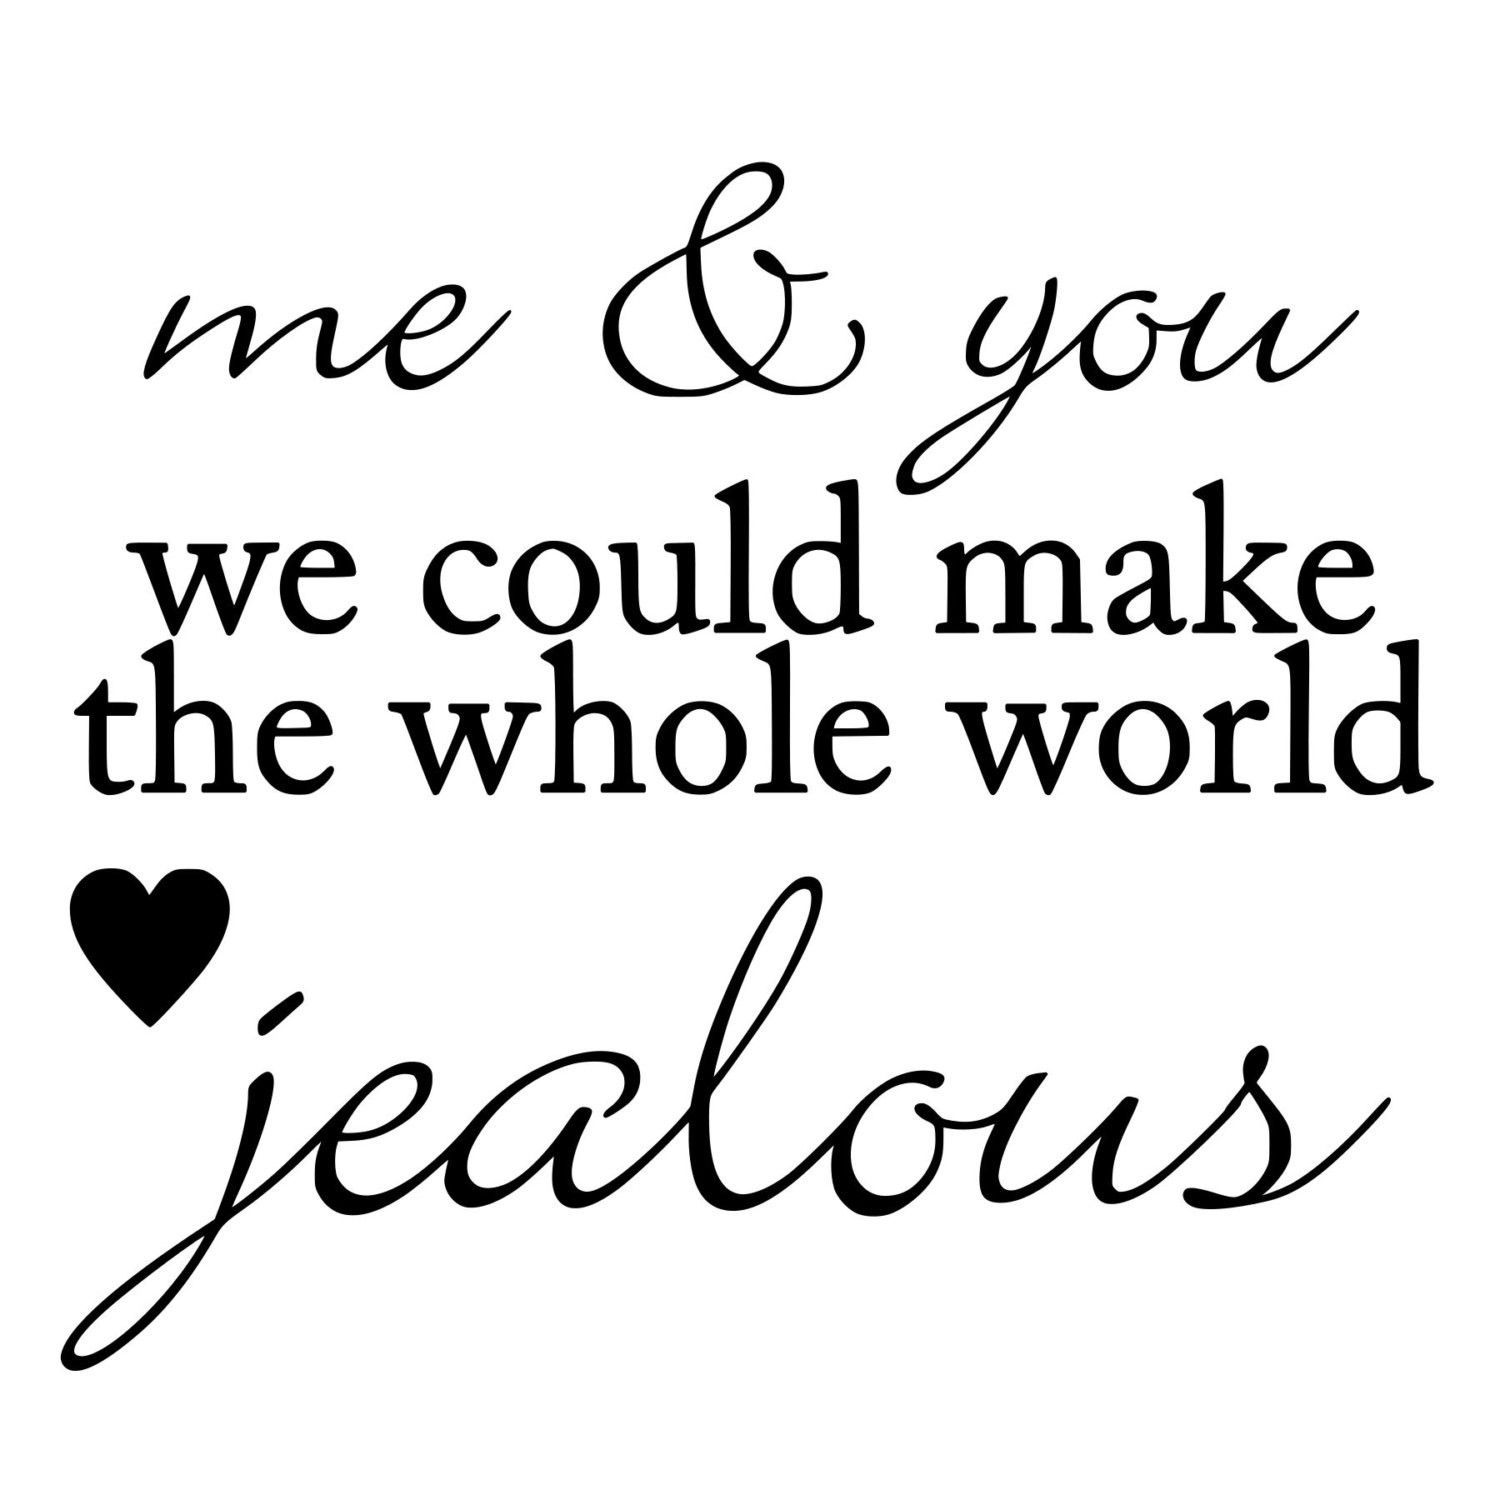 Famous Wedding Quotes Me And You Could Make The Whole World Jealous Diecut Decal Car .